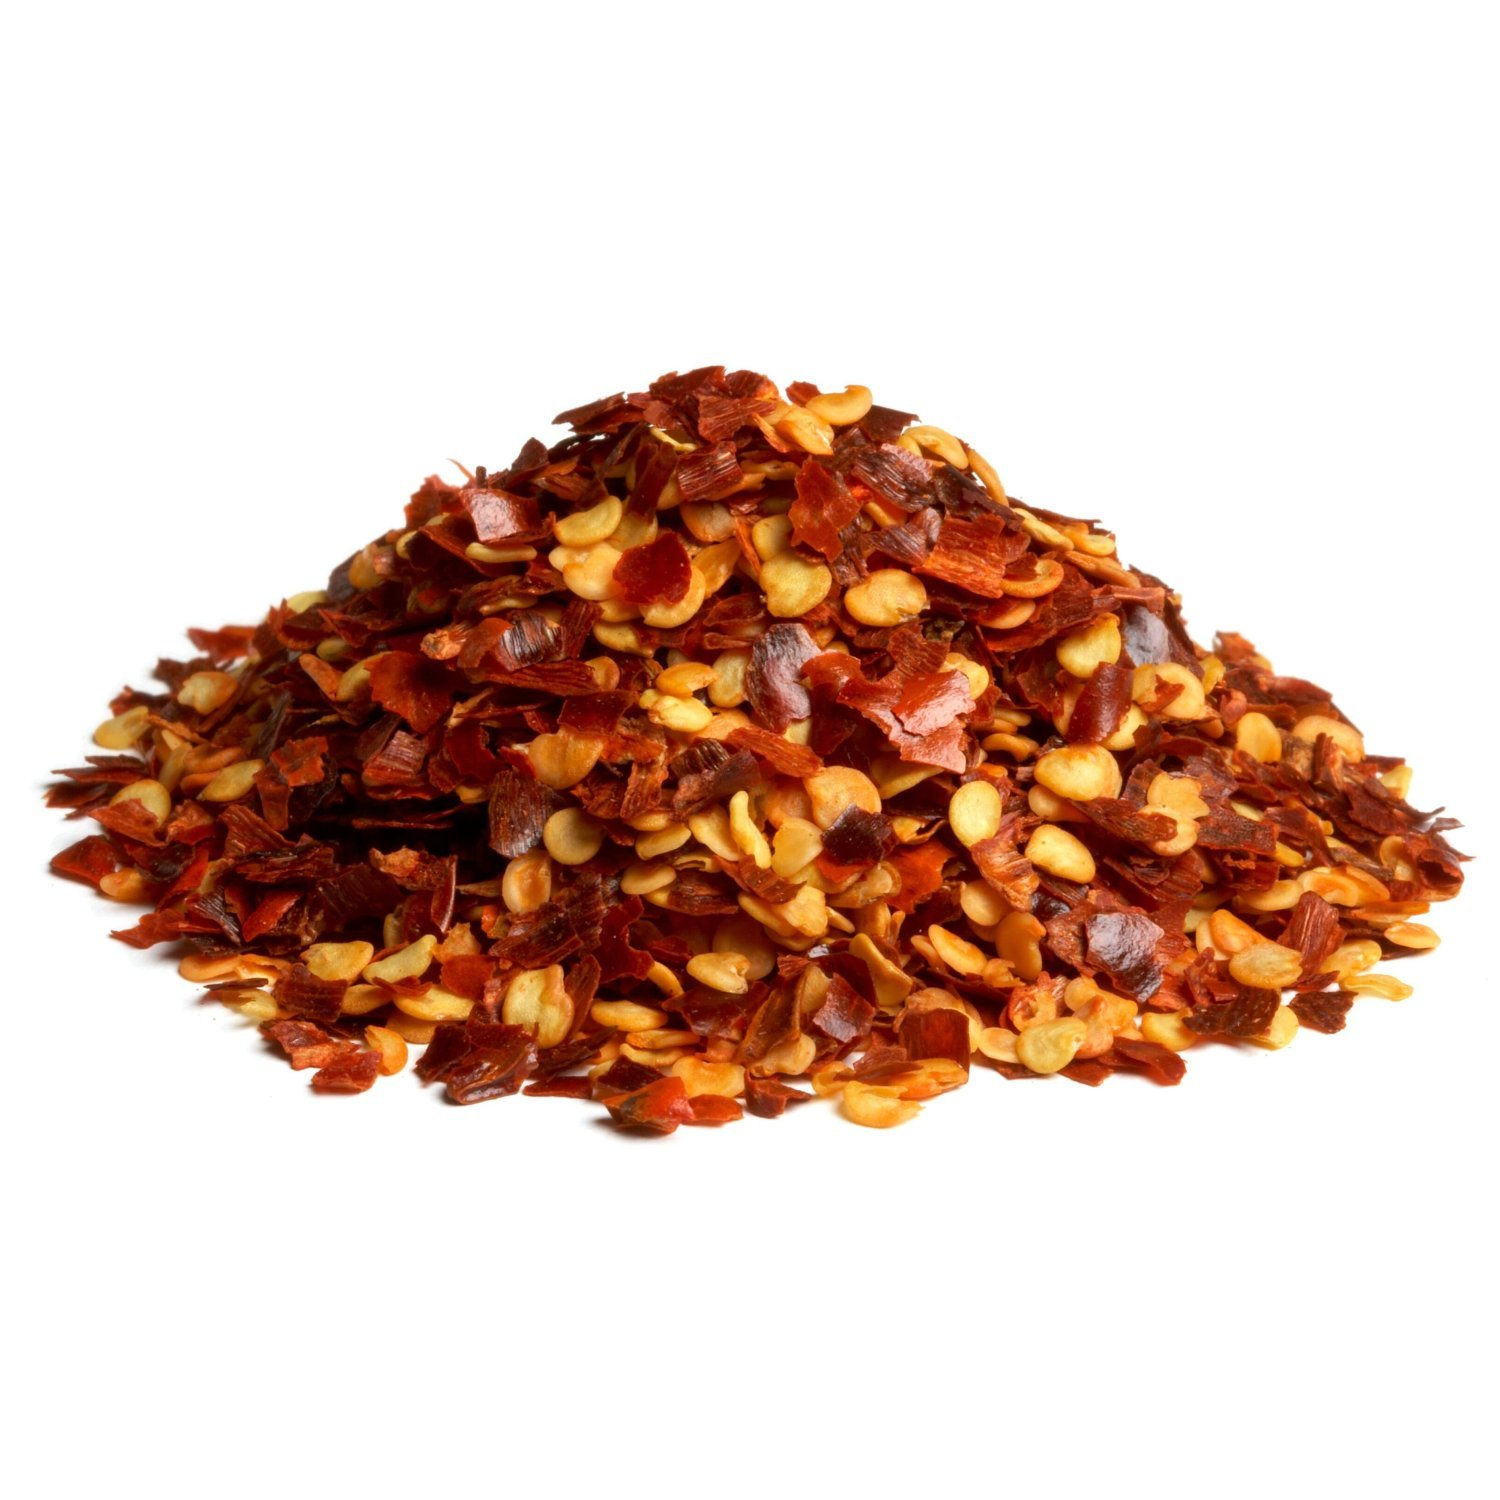 Durkee Crushed Red Pepper, 25-Pound